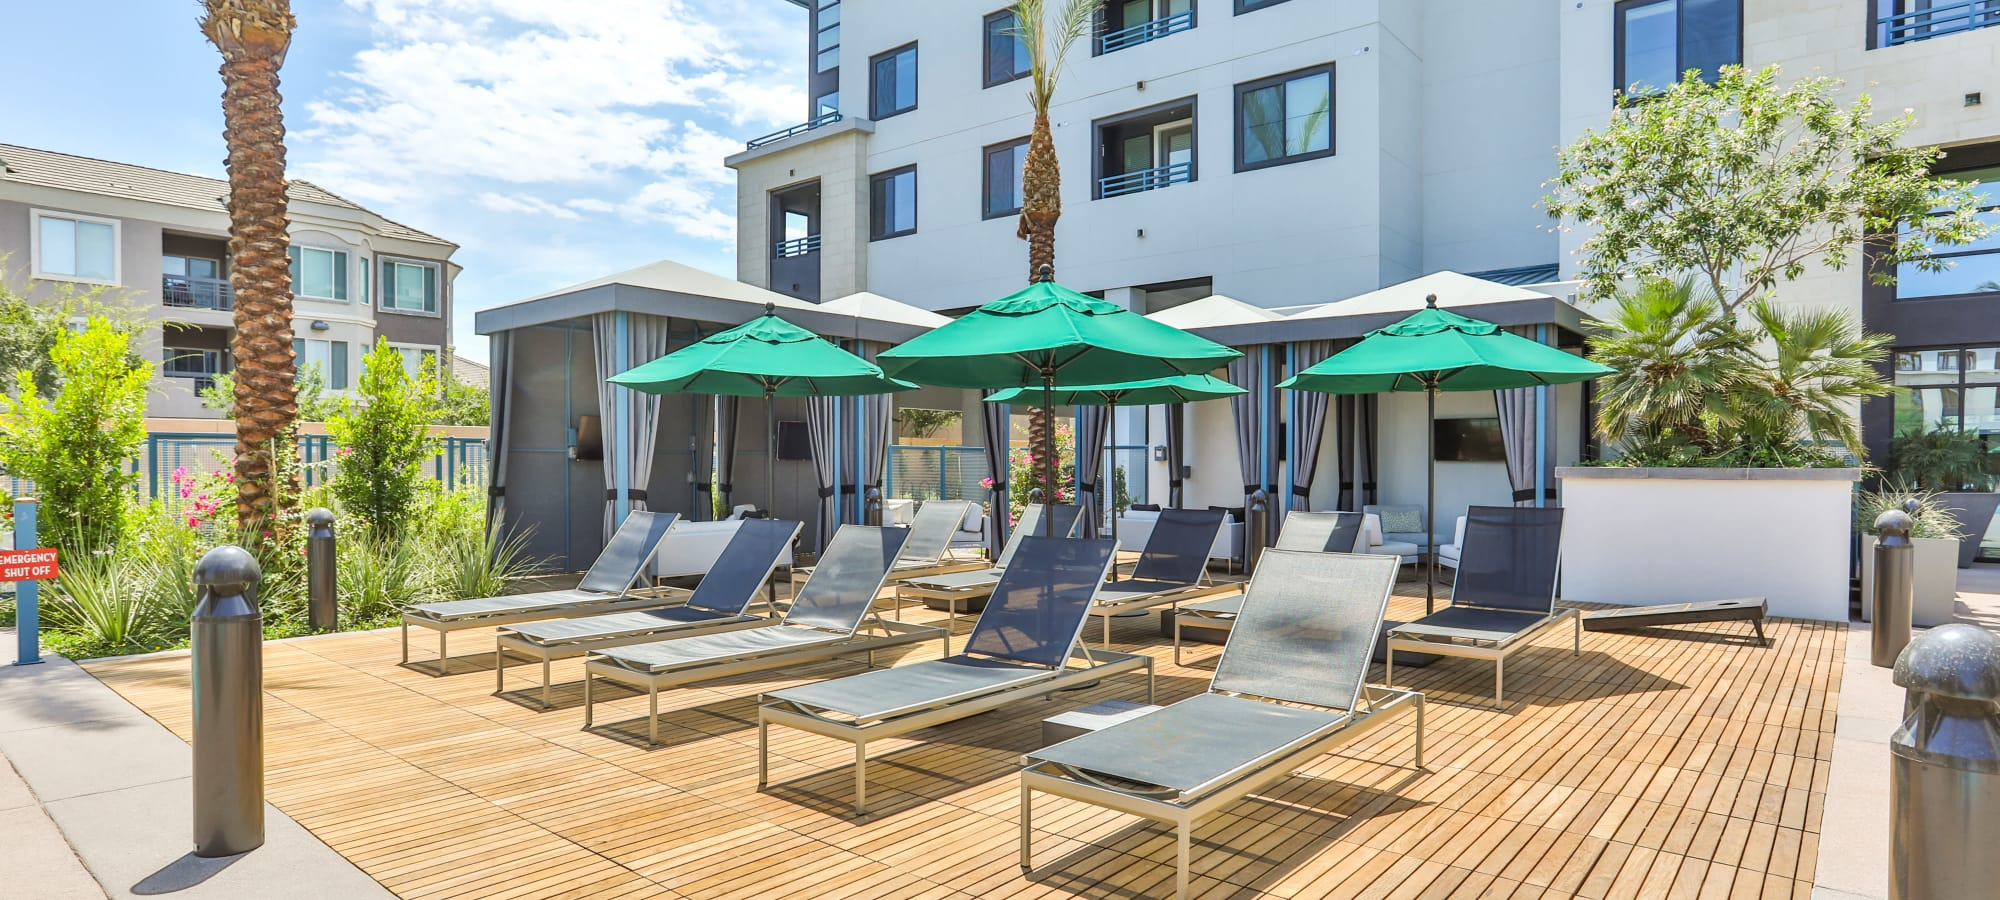 Comfortable lounge chairs with umbrellas at Lakeside Drive Apartments in Tempe, Arizona